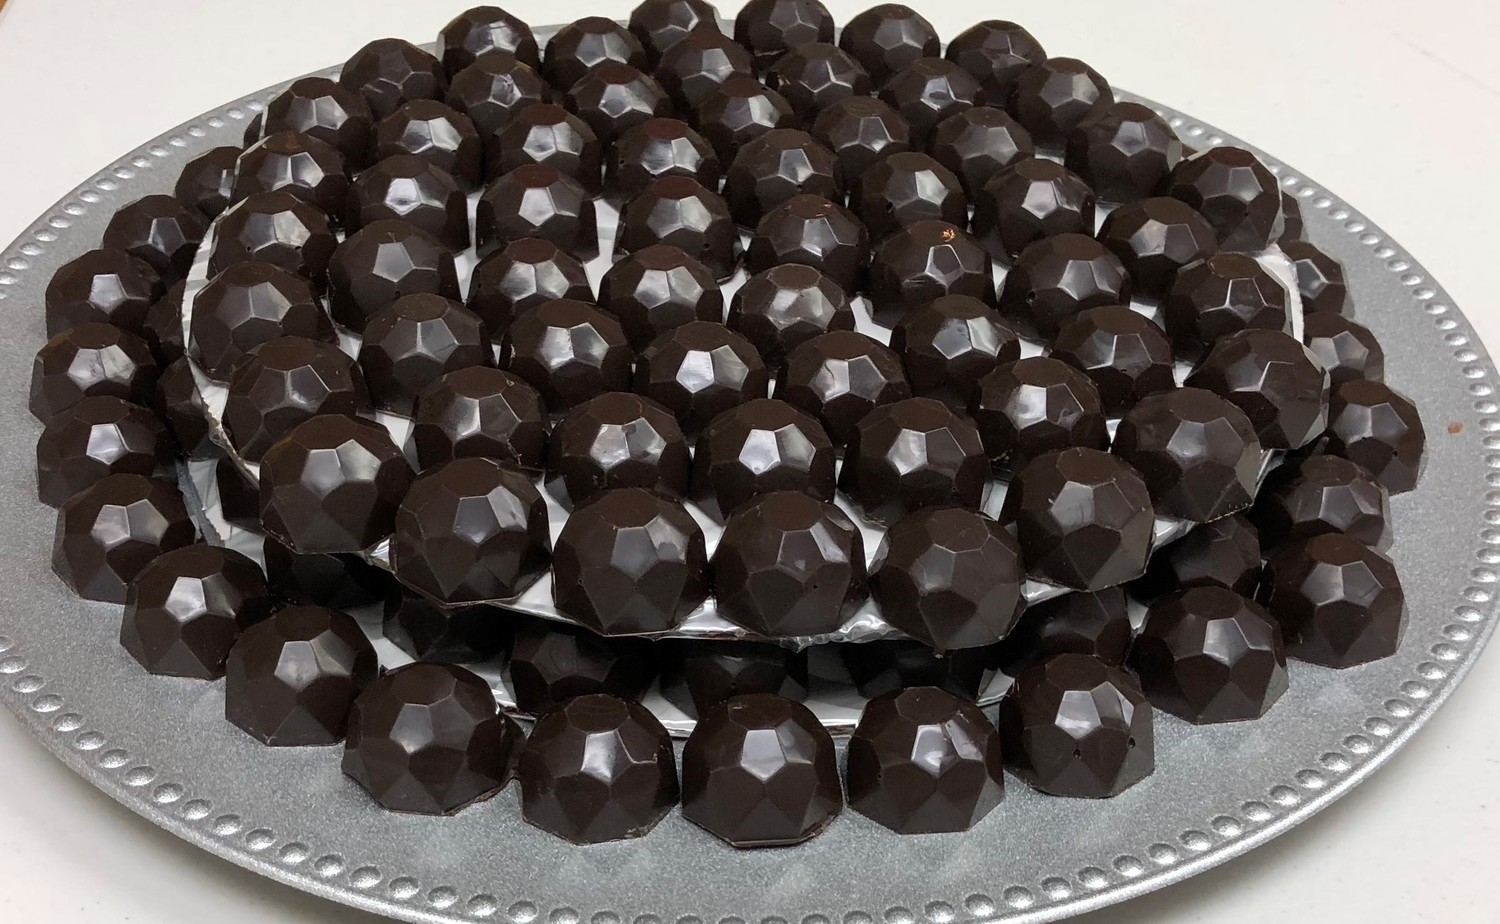 Milk or Dark Chocolate Diamond Chocolates.  These solid Chocolates are wonderful.  The shape and design of these chocolates allows them to shimmer in the light. Peanut and Gluten Free. Made here!